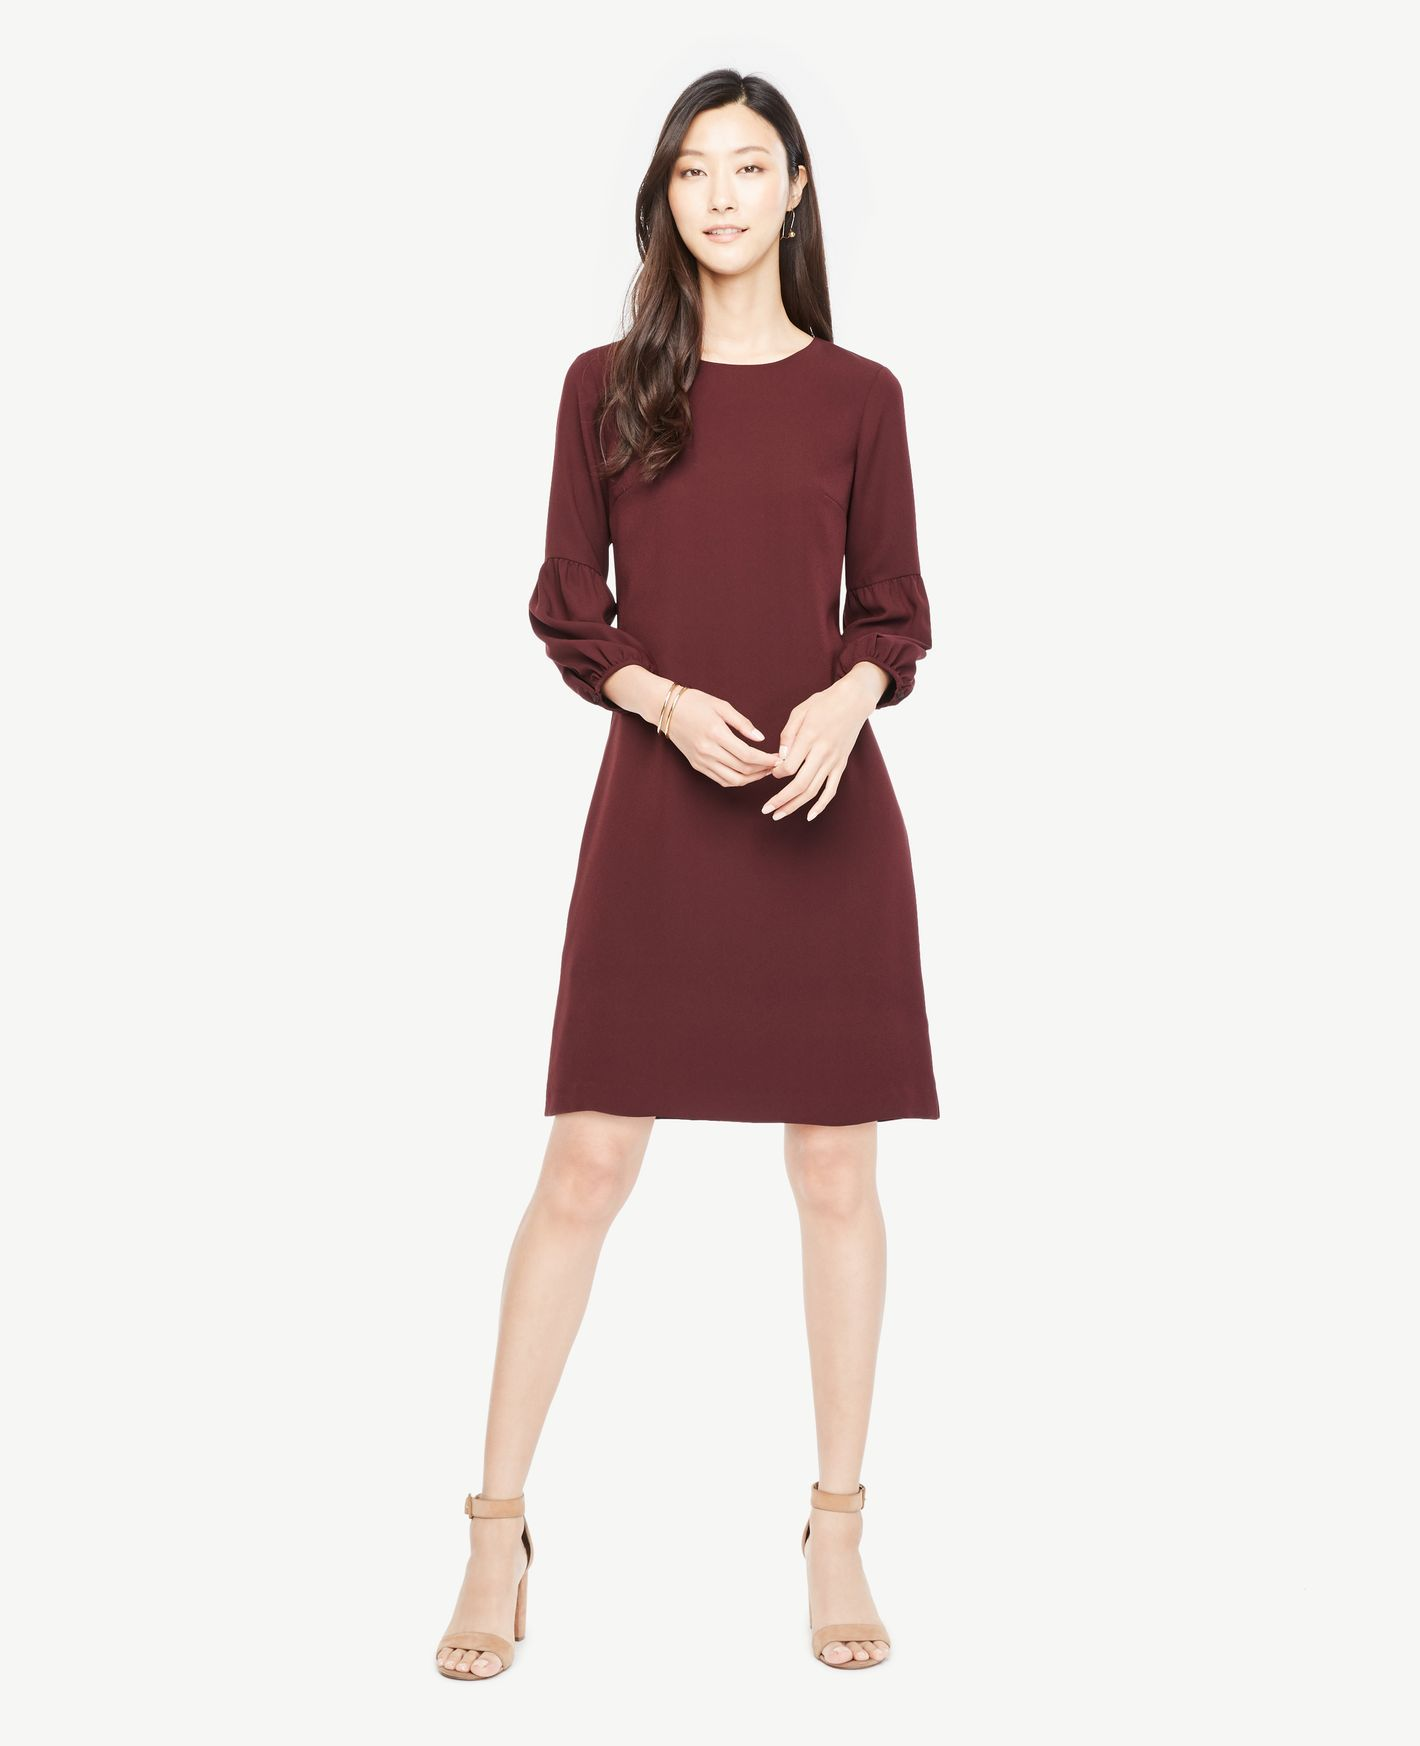 9 Best Long Sleeve Dresses for Work to Wear in the Fall